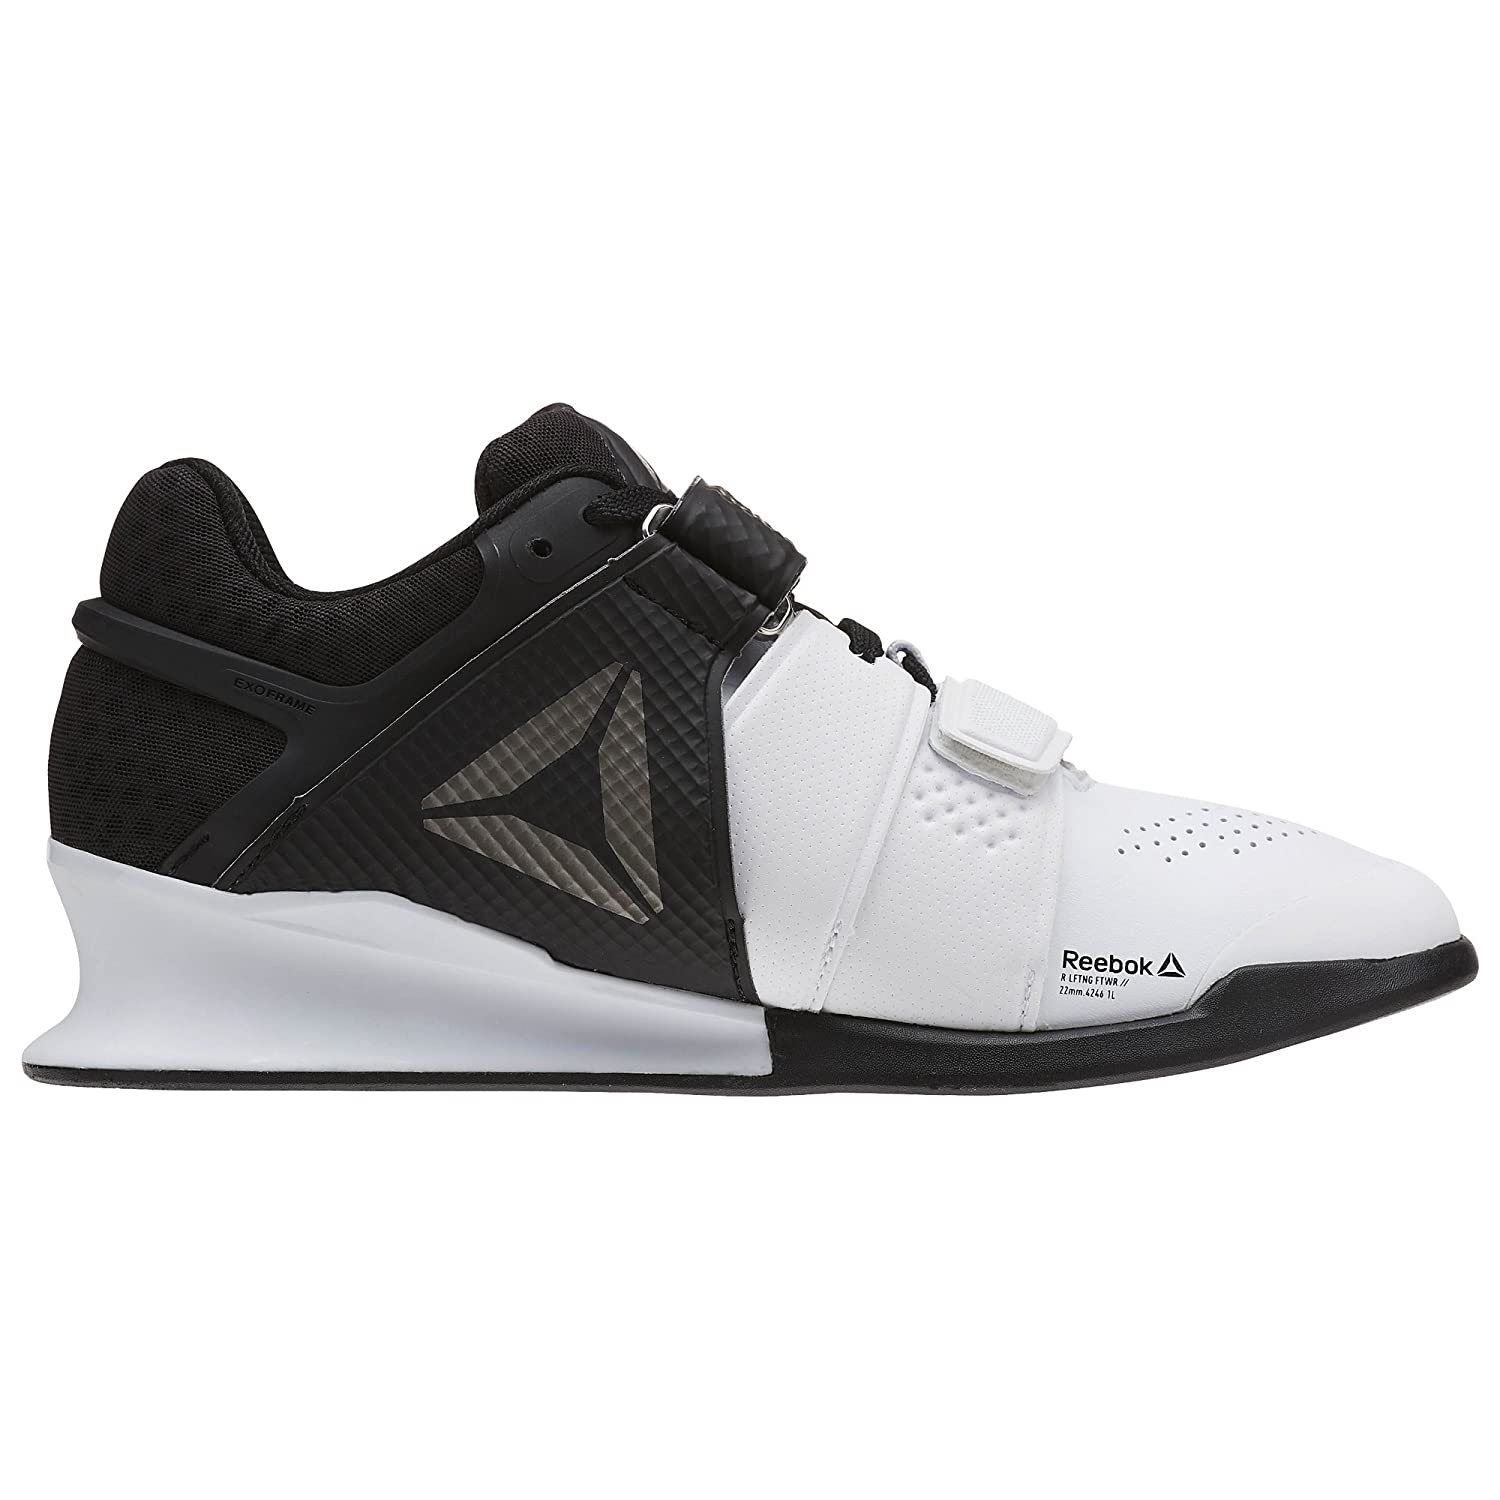 cbbab71a58d Reebok Women s Legacy Lifter Cross Training Shoes  Amazon.ca  Shoes    Handbags